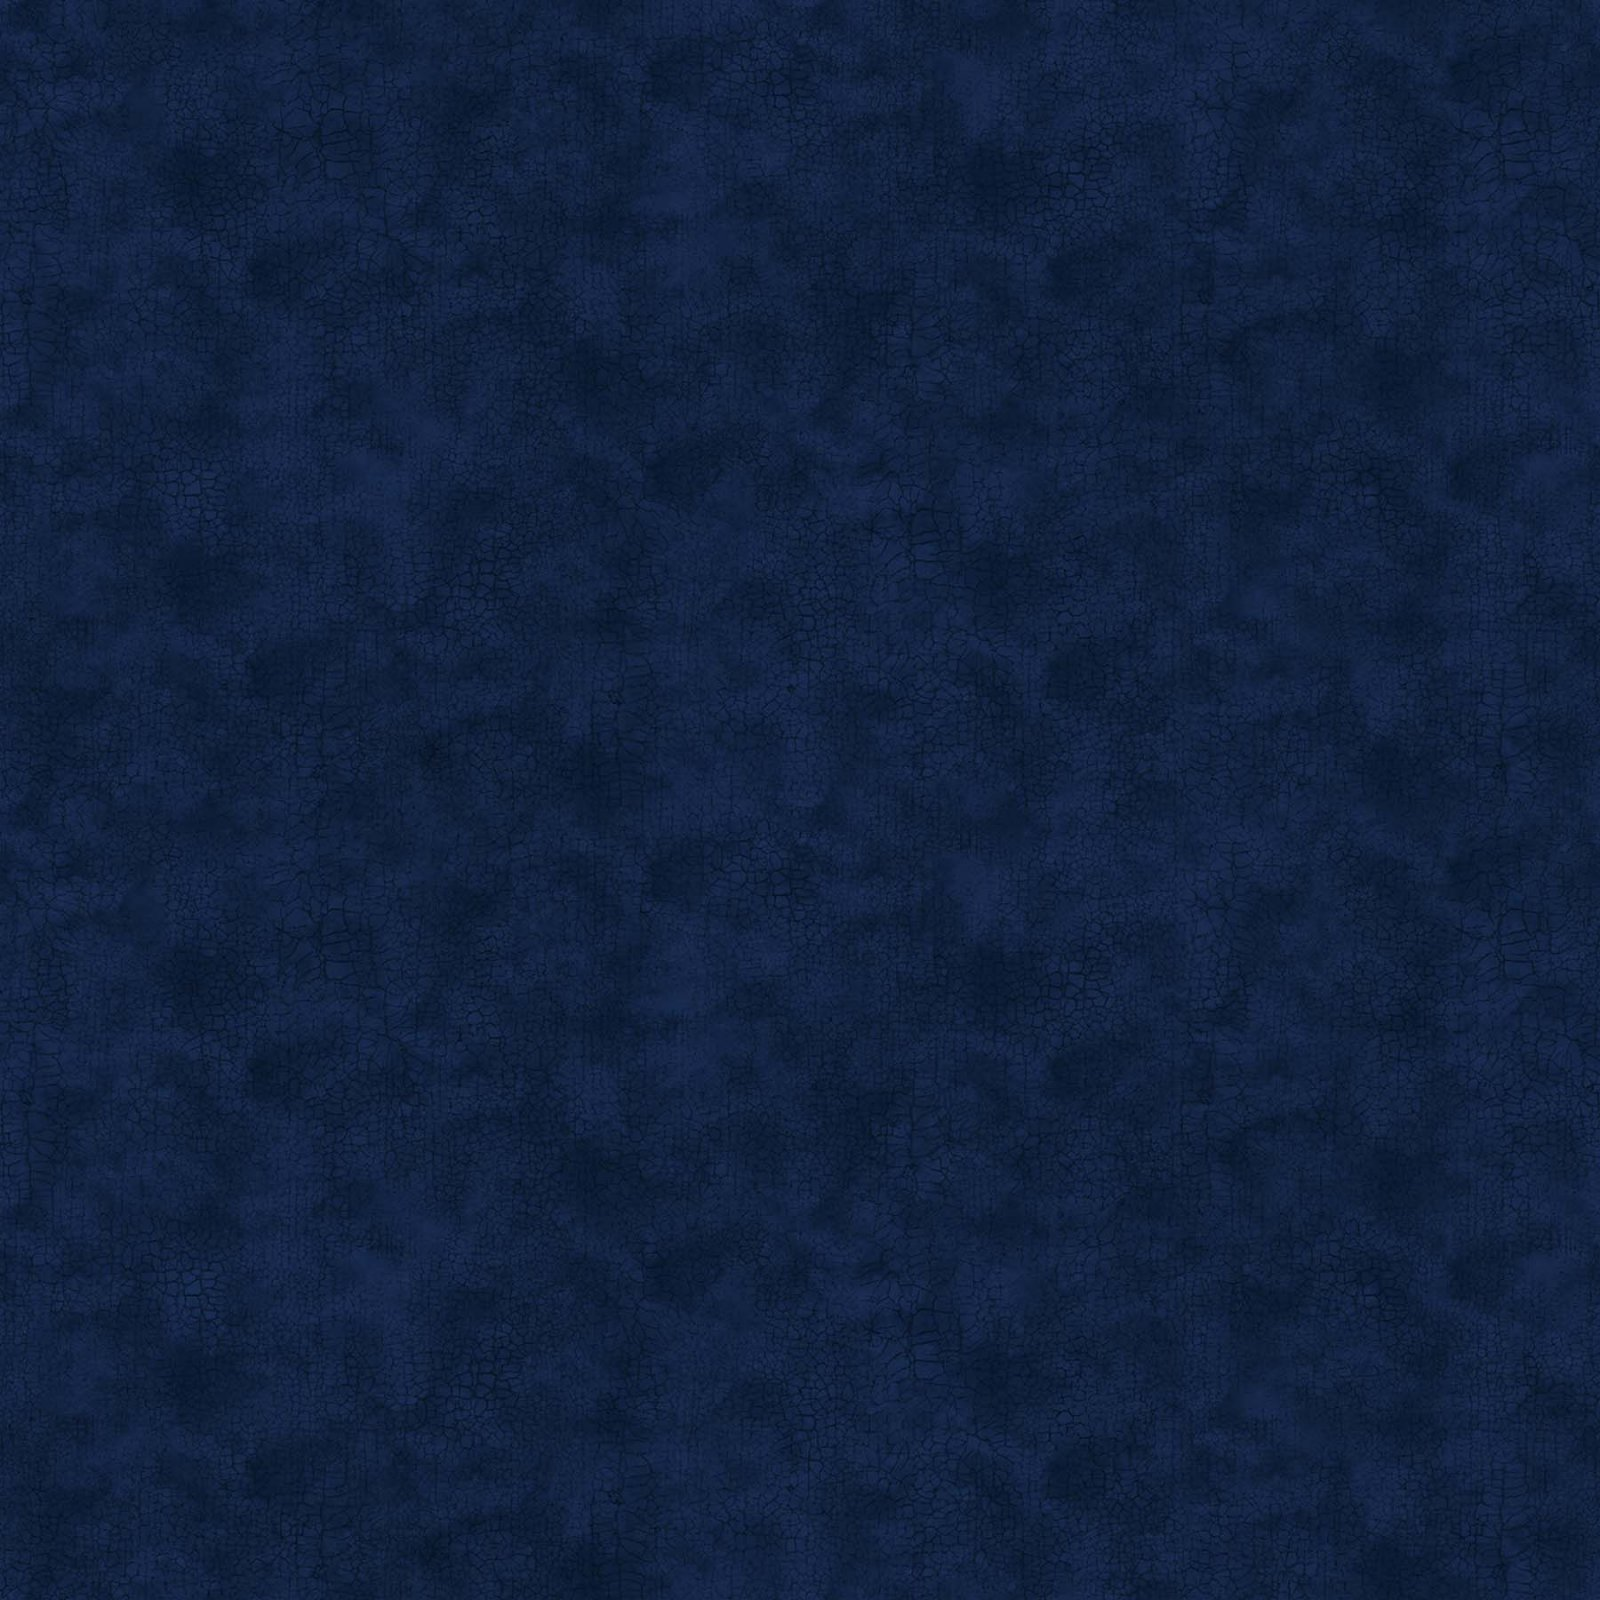 Northcott CRACKLE 9045-49 MIDNIGHT Blue Tonal